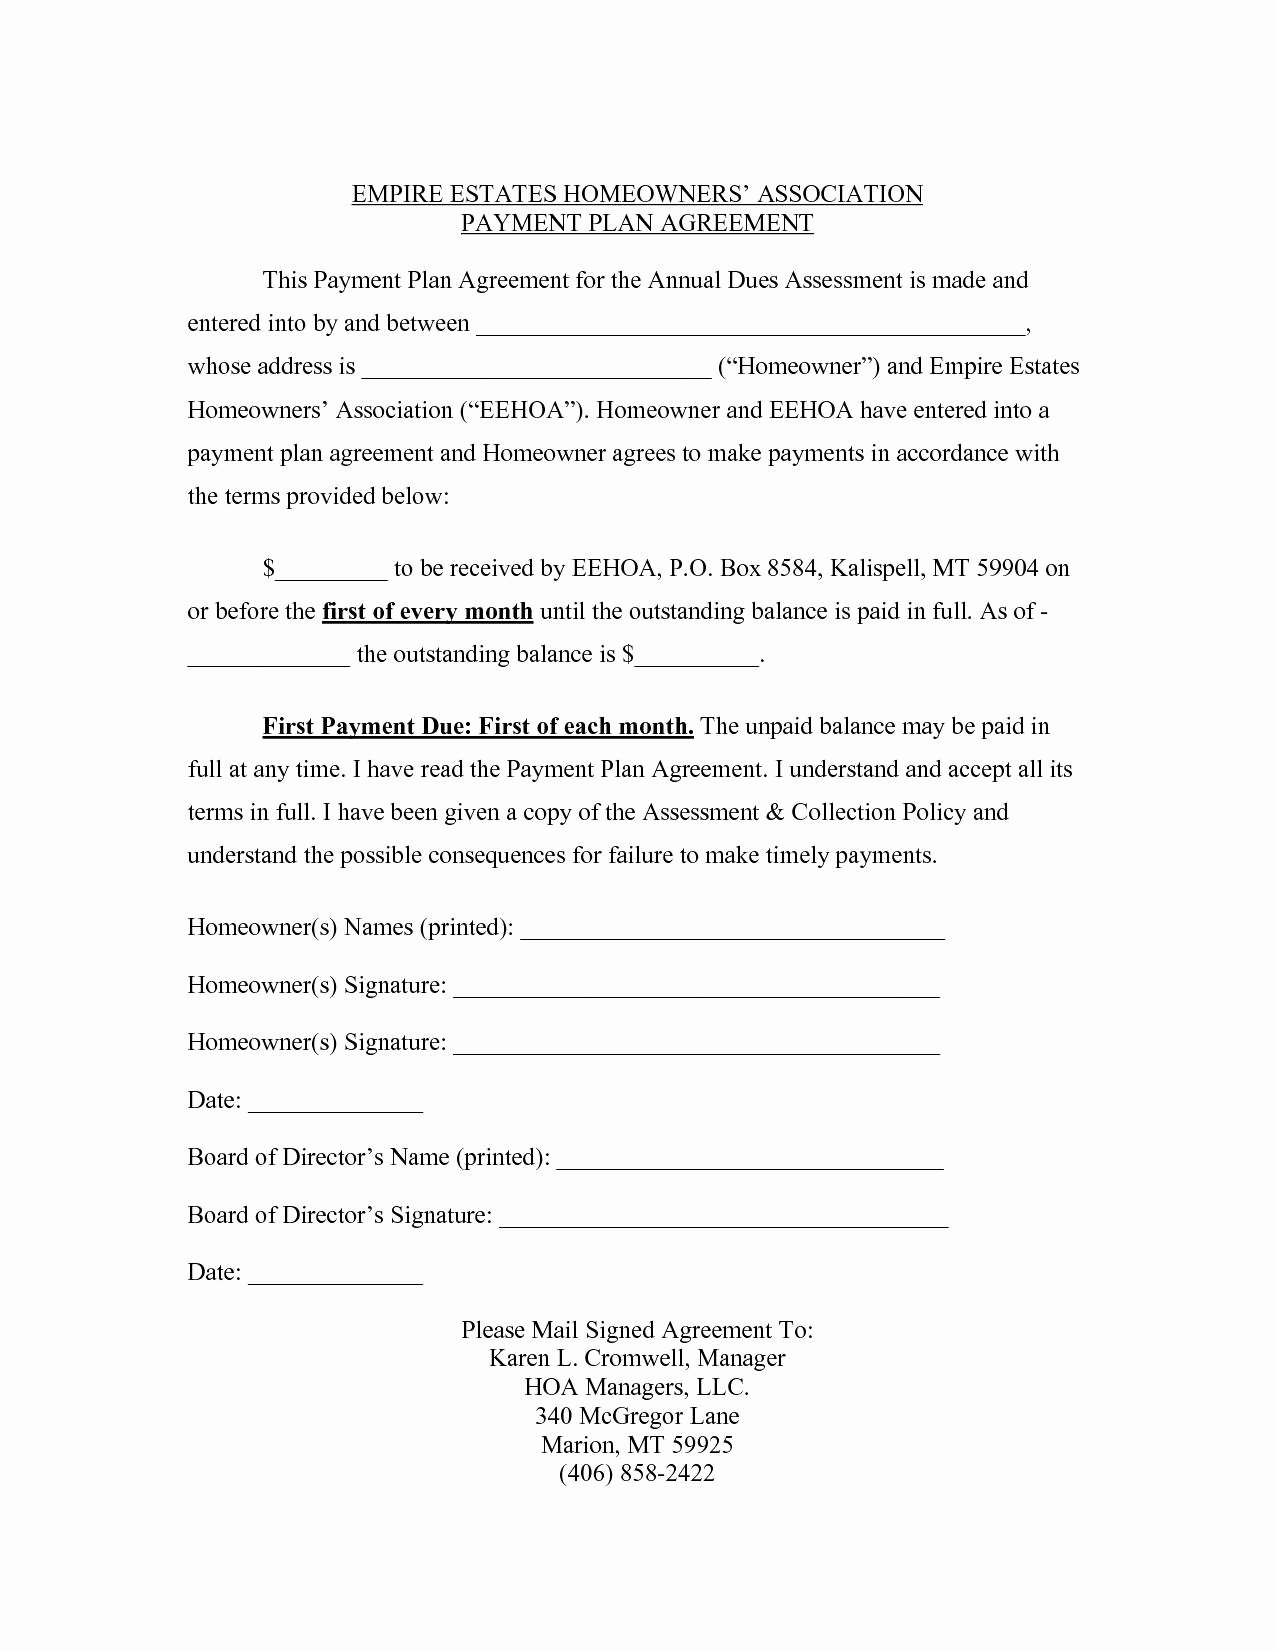 Car Accident Settlement Agreement Sample Fresh Full and Final Settlement Letter Template Car Accident